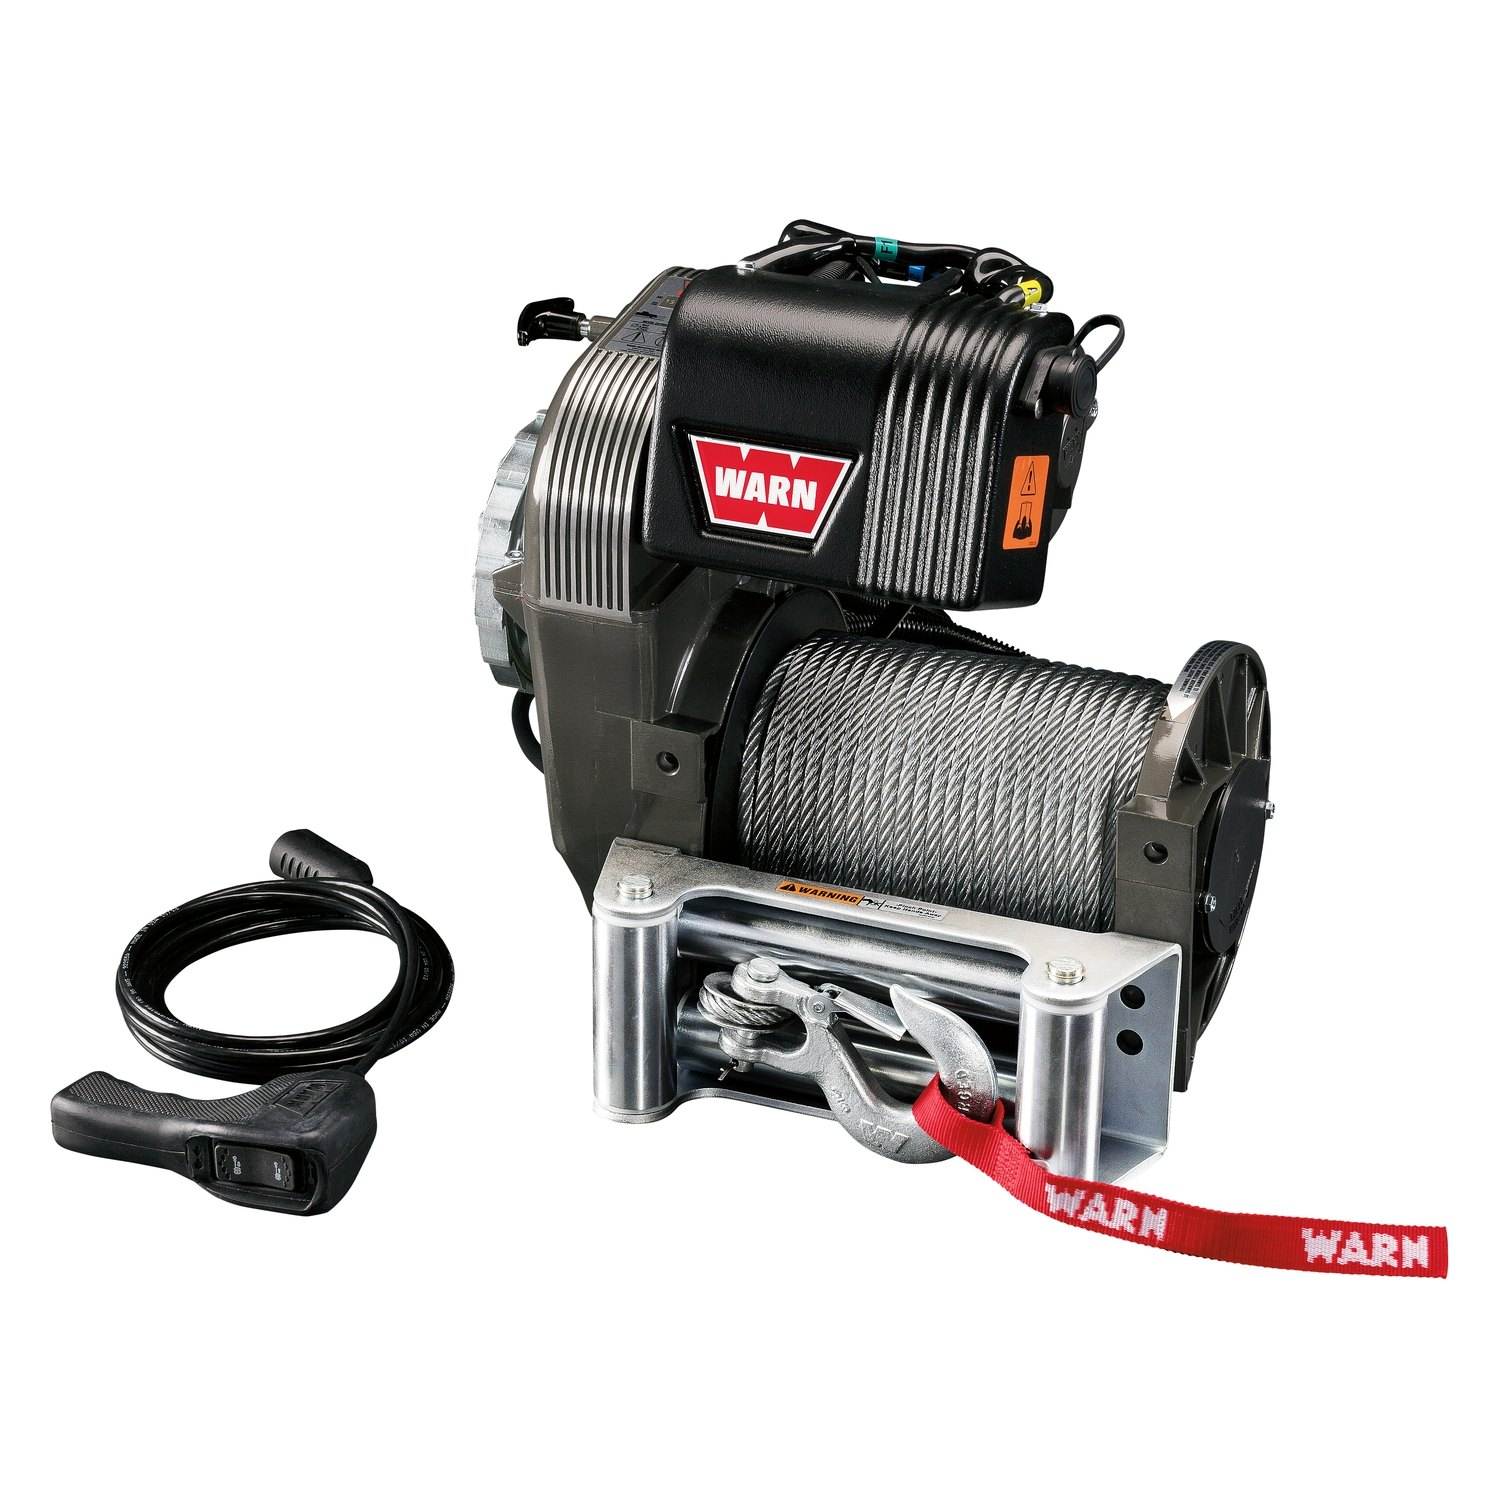 warn winch 2002 gmc envoy stereo wiring diagram 8 000 lbs m8274 50 series self recovery electric